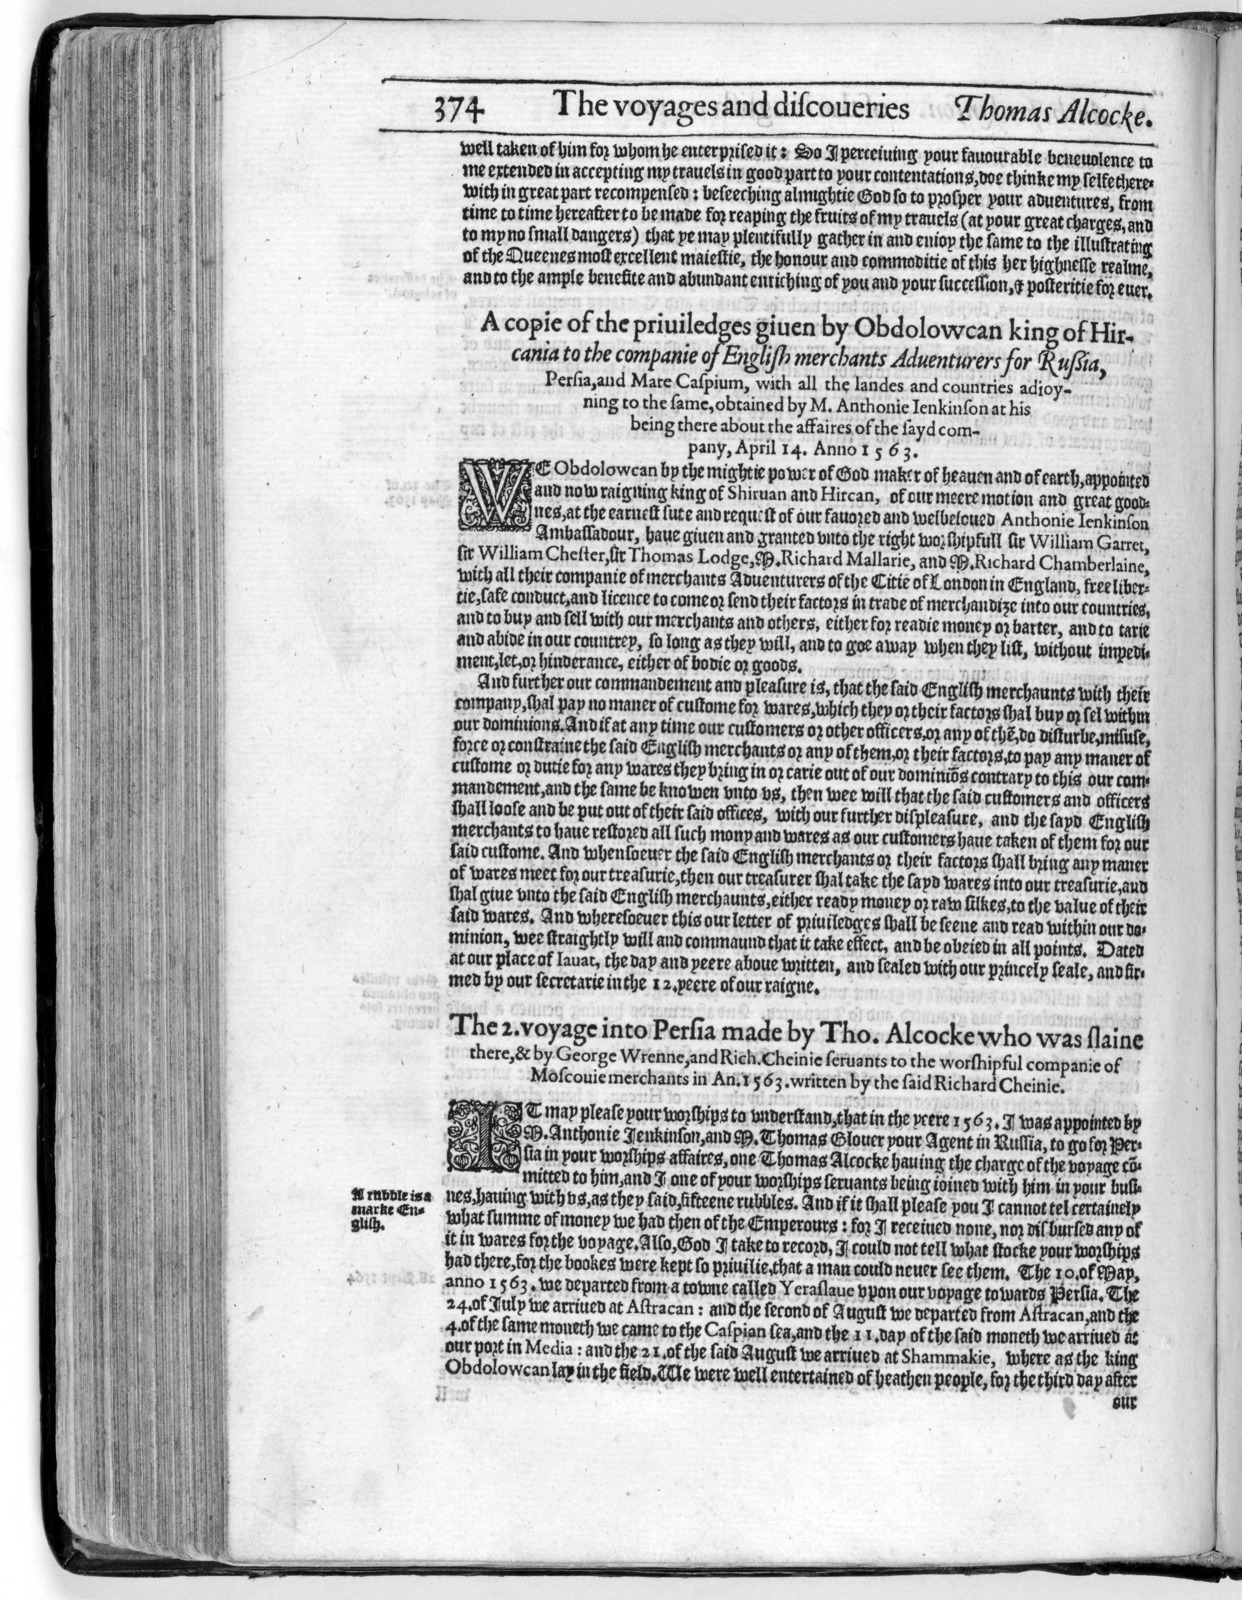 The principall nauigations, voiages, and discoueries of the English nation : made by sea or ouer land to the most remote and farthest distant quarters of the earth at any time within the compasse of these 1500 yeeres : deuided into three seuerall parts ... the first conteining the personall trauels of the English vnto Iudea, Syria, Arabia ... the second comprehending the worthy discoueries of the English towards the north and northeast by sea as of Lapland ... the third and last including the English valiant attempts in searching almost all the corners of the vaste and new world of America ... : whereunto is added the last most renowmed English nauigation, round about the whole globe of the Earth /